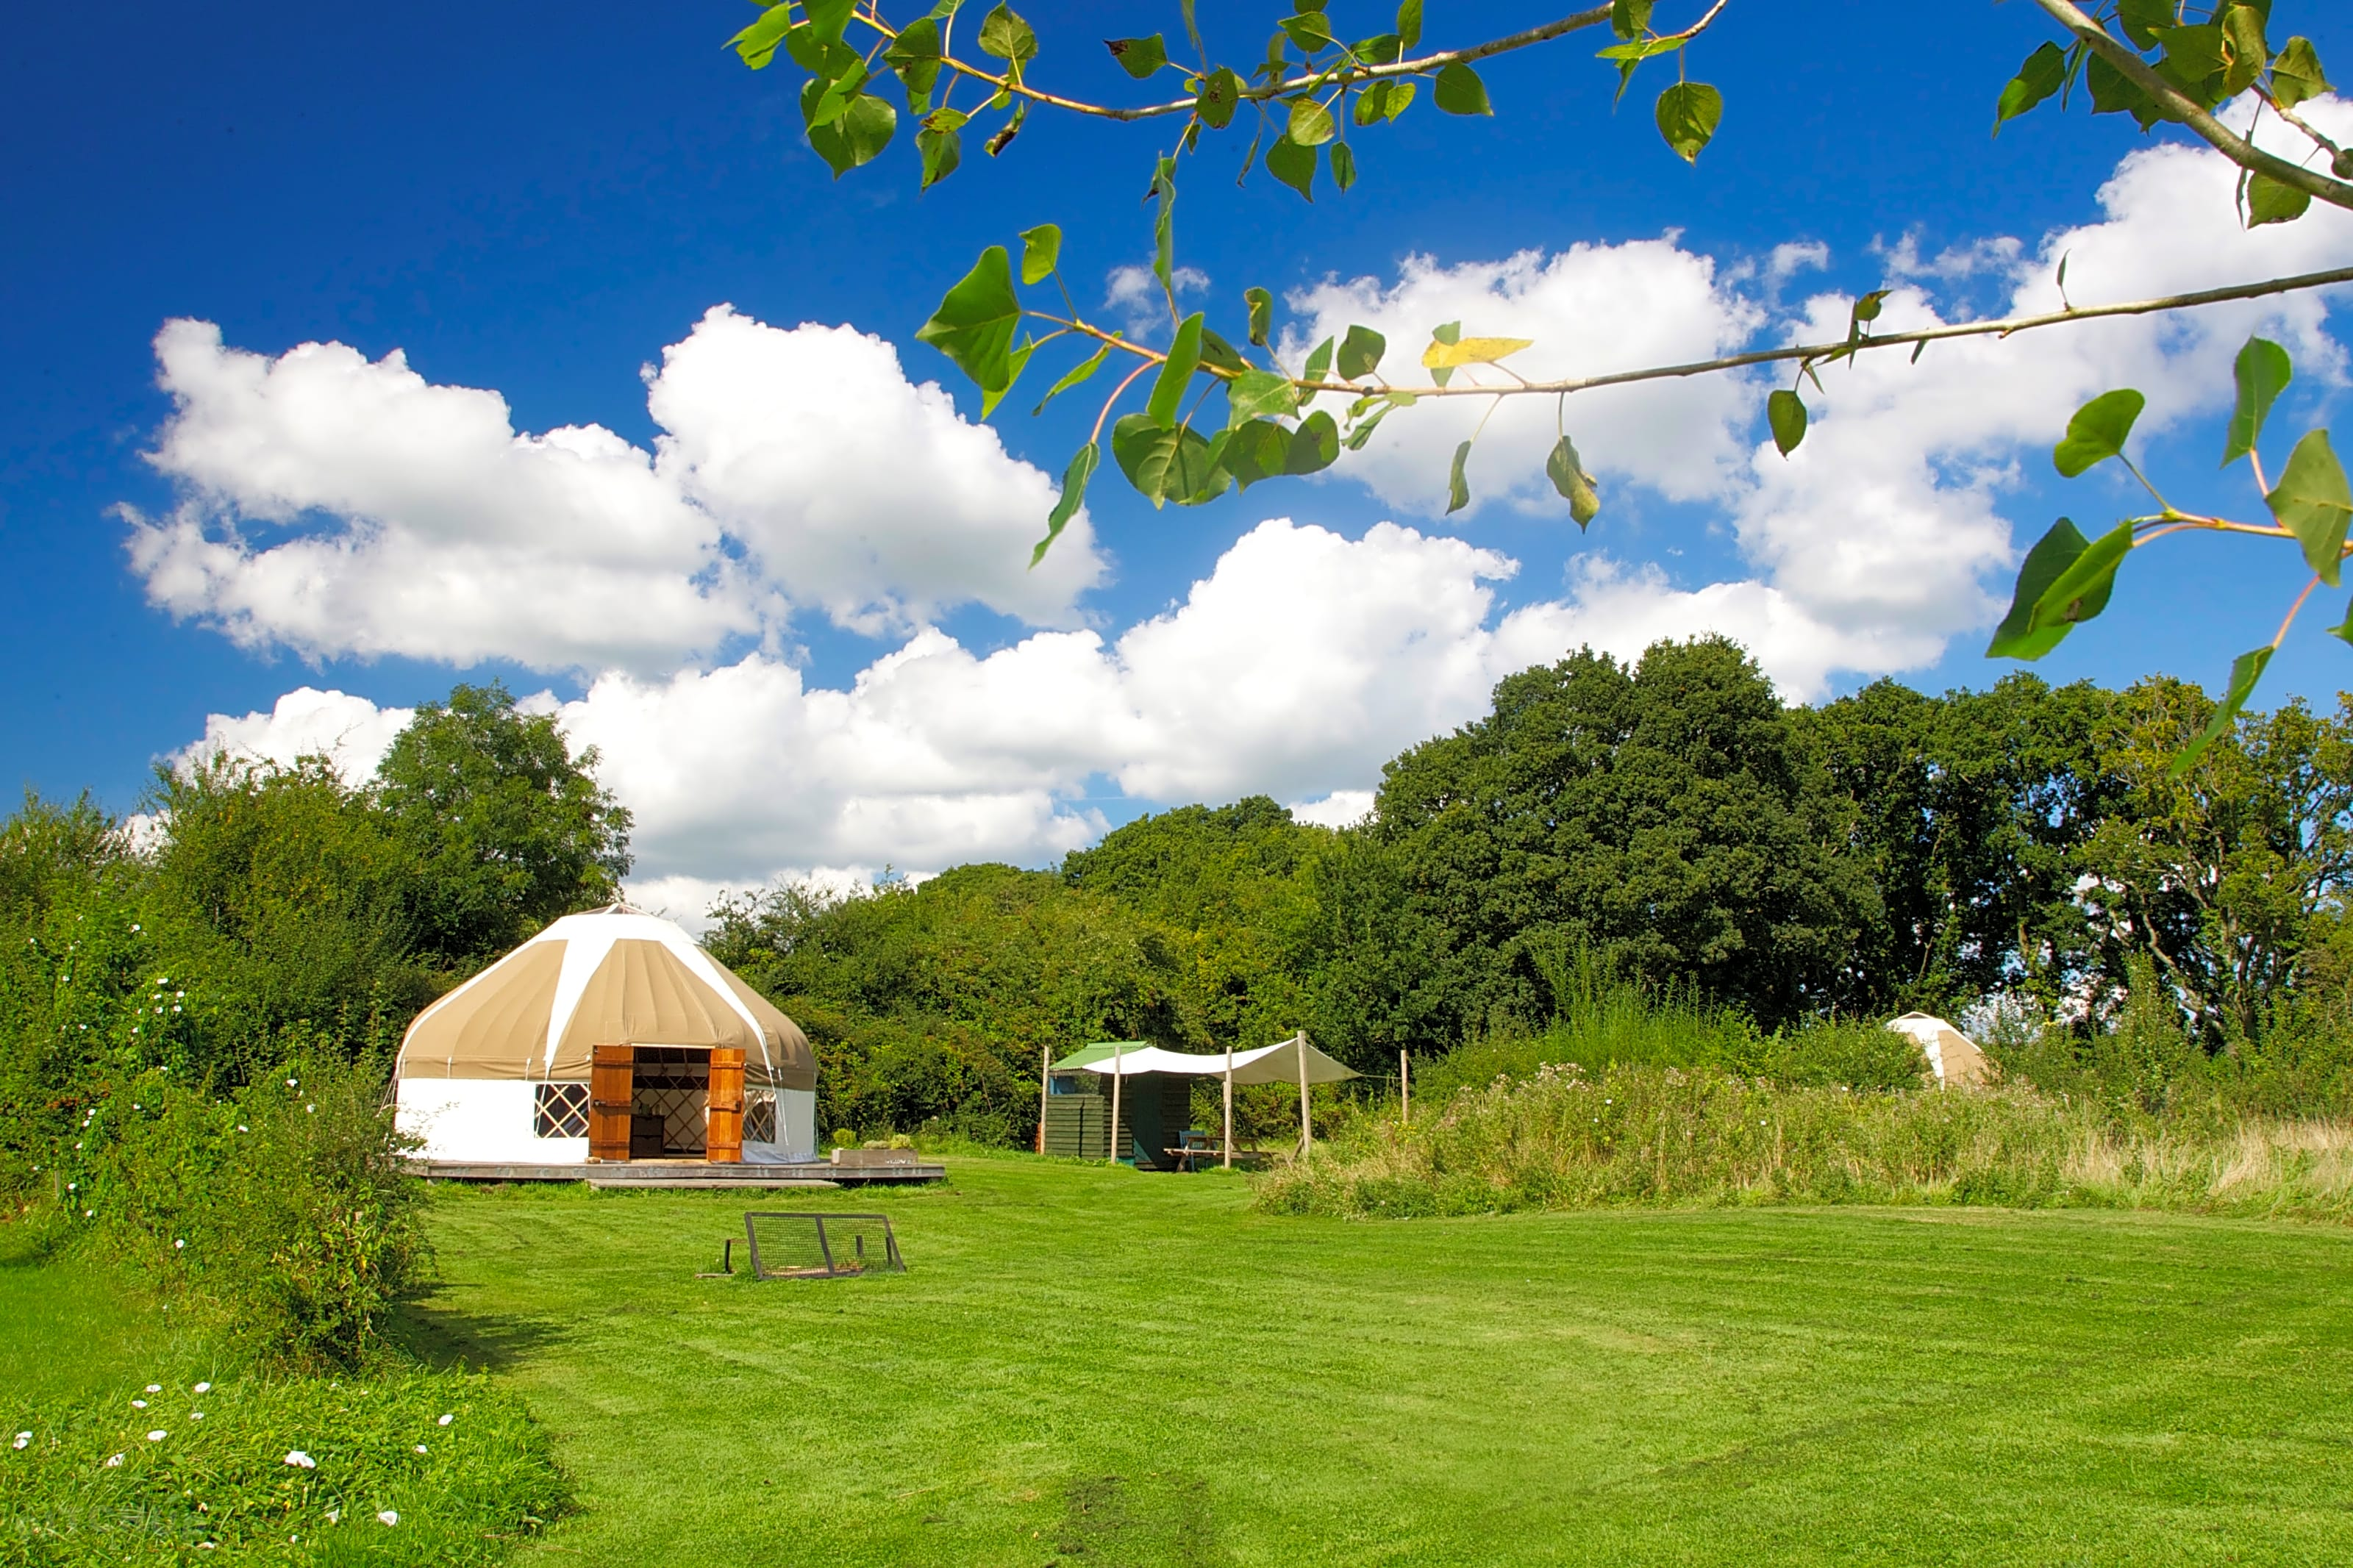 Bloomfield camping poole pitchup - Campsites in dorset with swimming pools ...